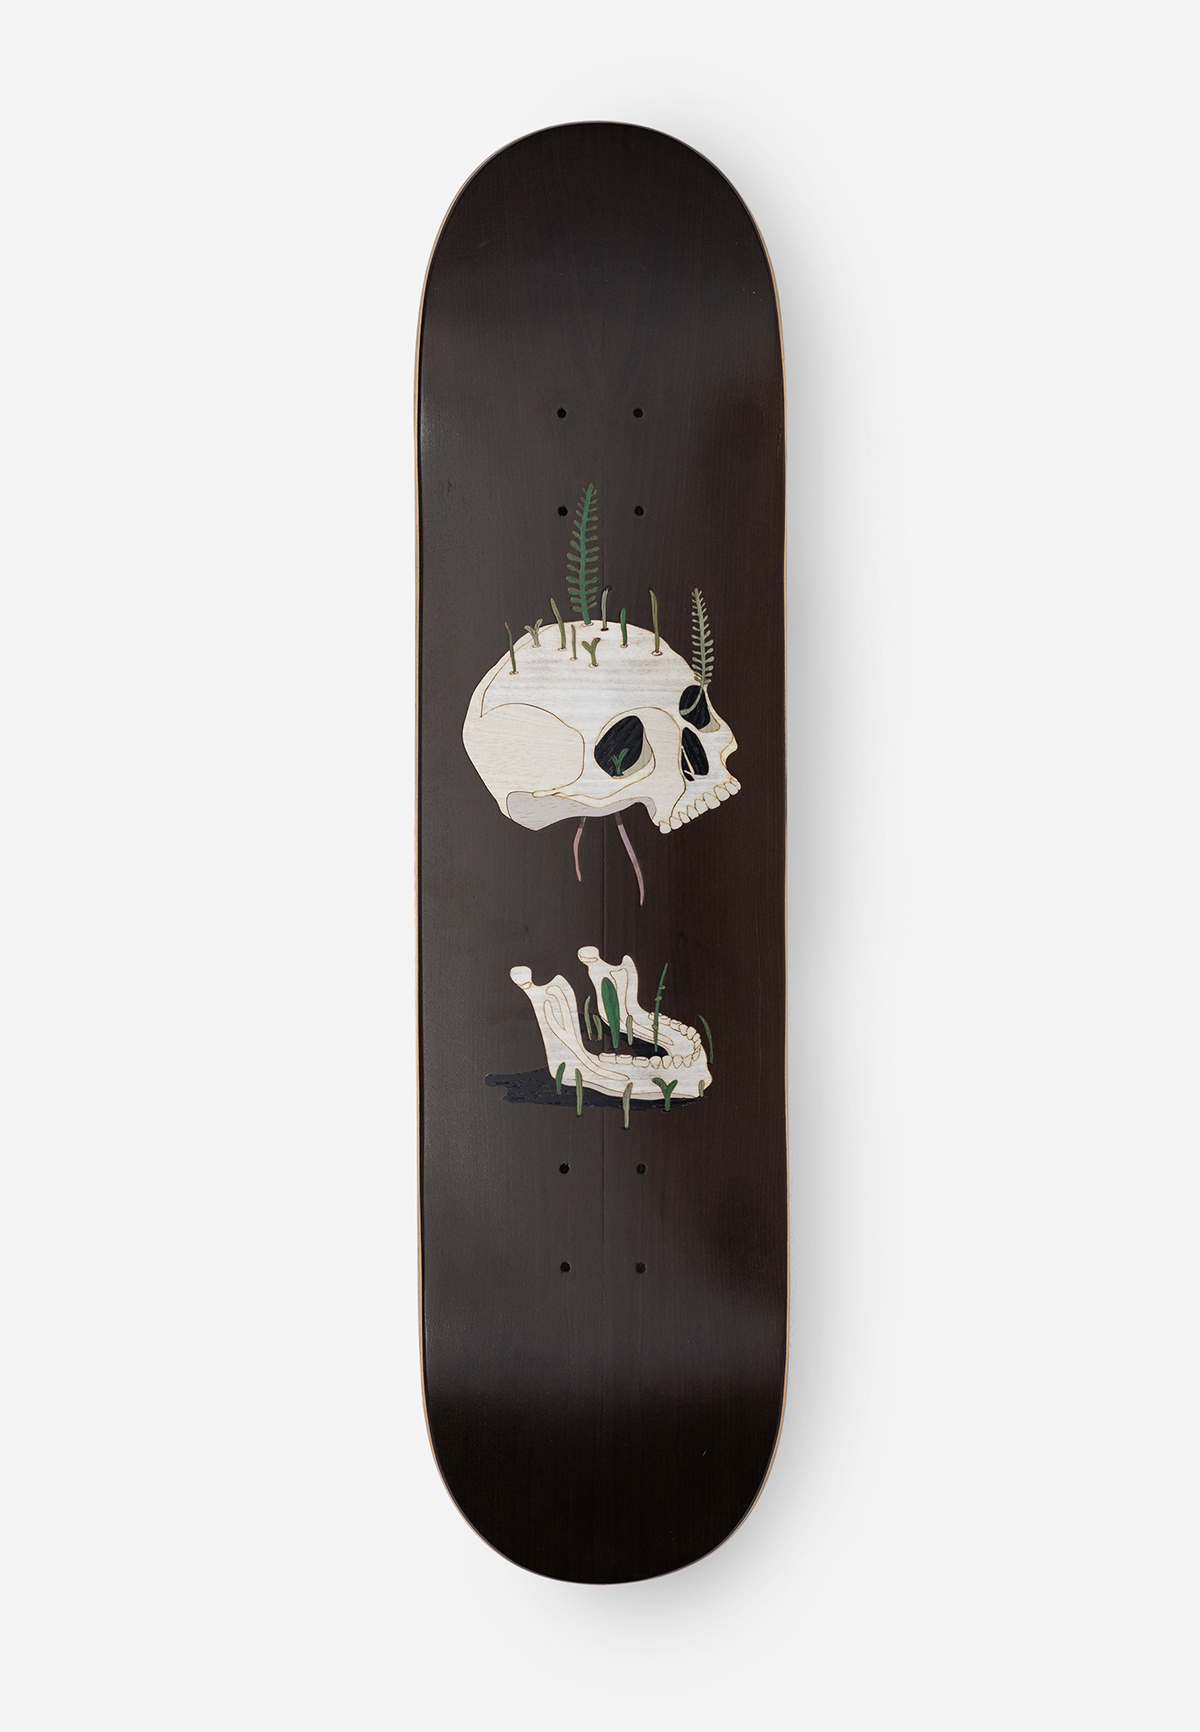 OLD SKULL BOARD - Marcantonio design